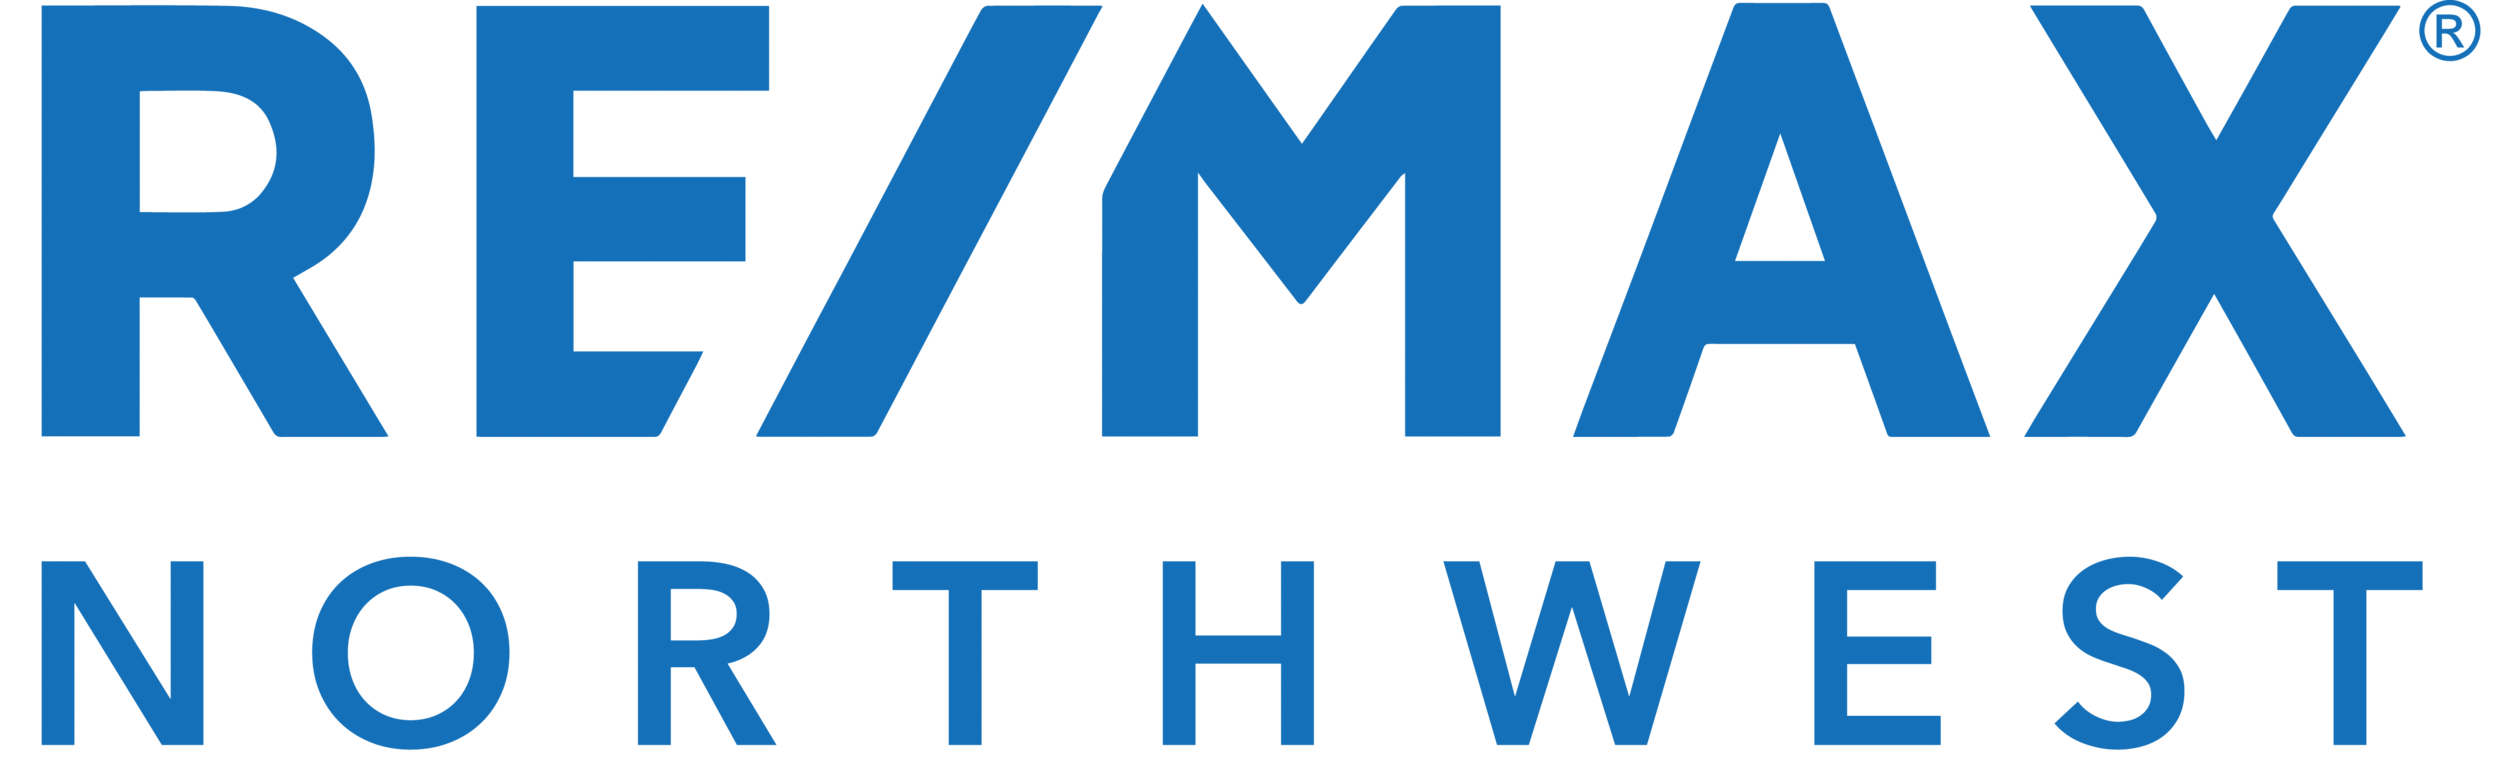 NW_2017Logo_Blue - Copy.png